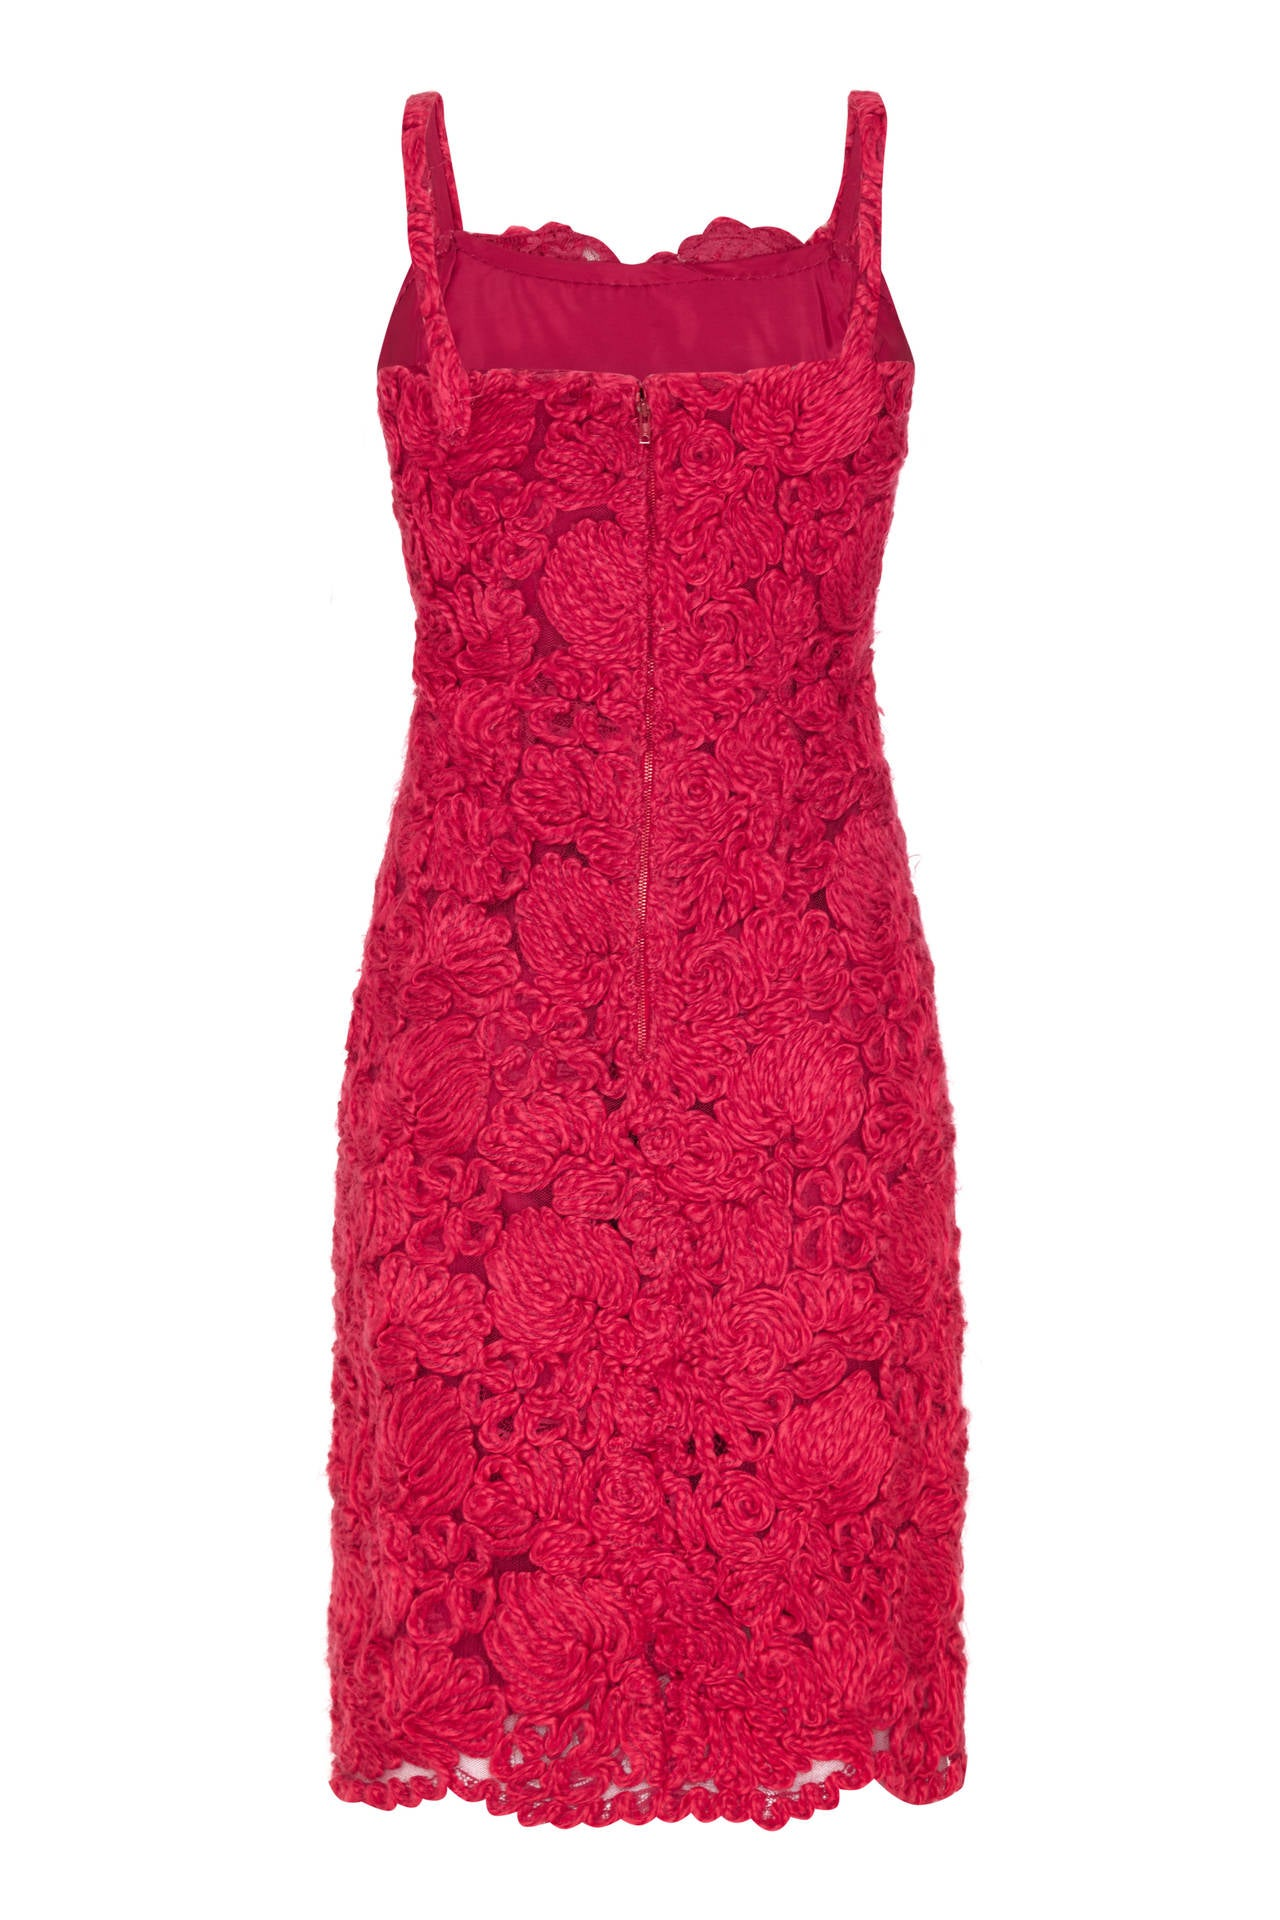 1960s french couture red wool applique dress suit for sale for French couture dresses